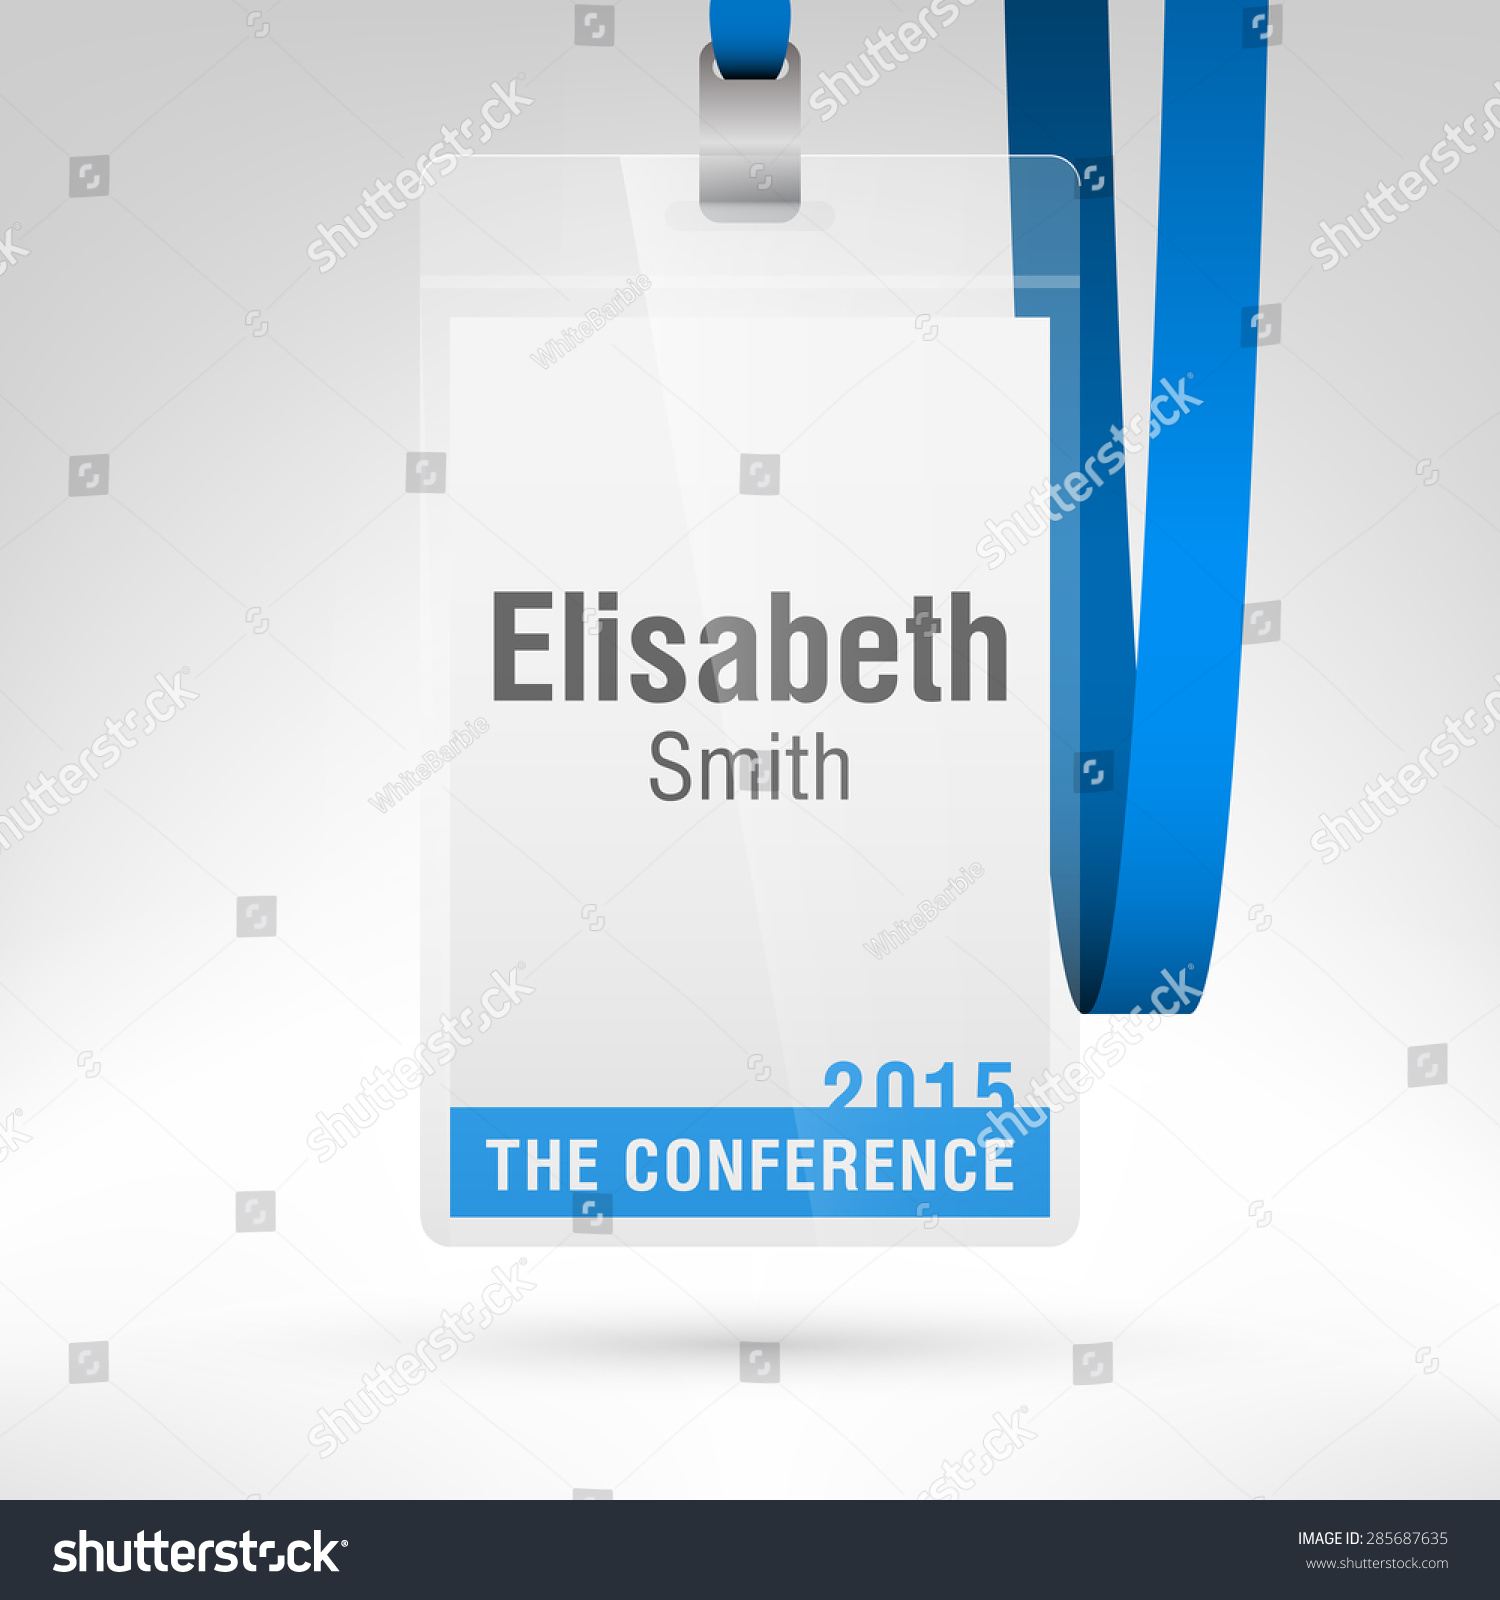 Name Badge Template Radioliriodosvalesonlinetk - Name badge template with photo